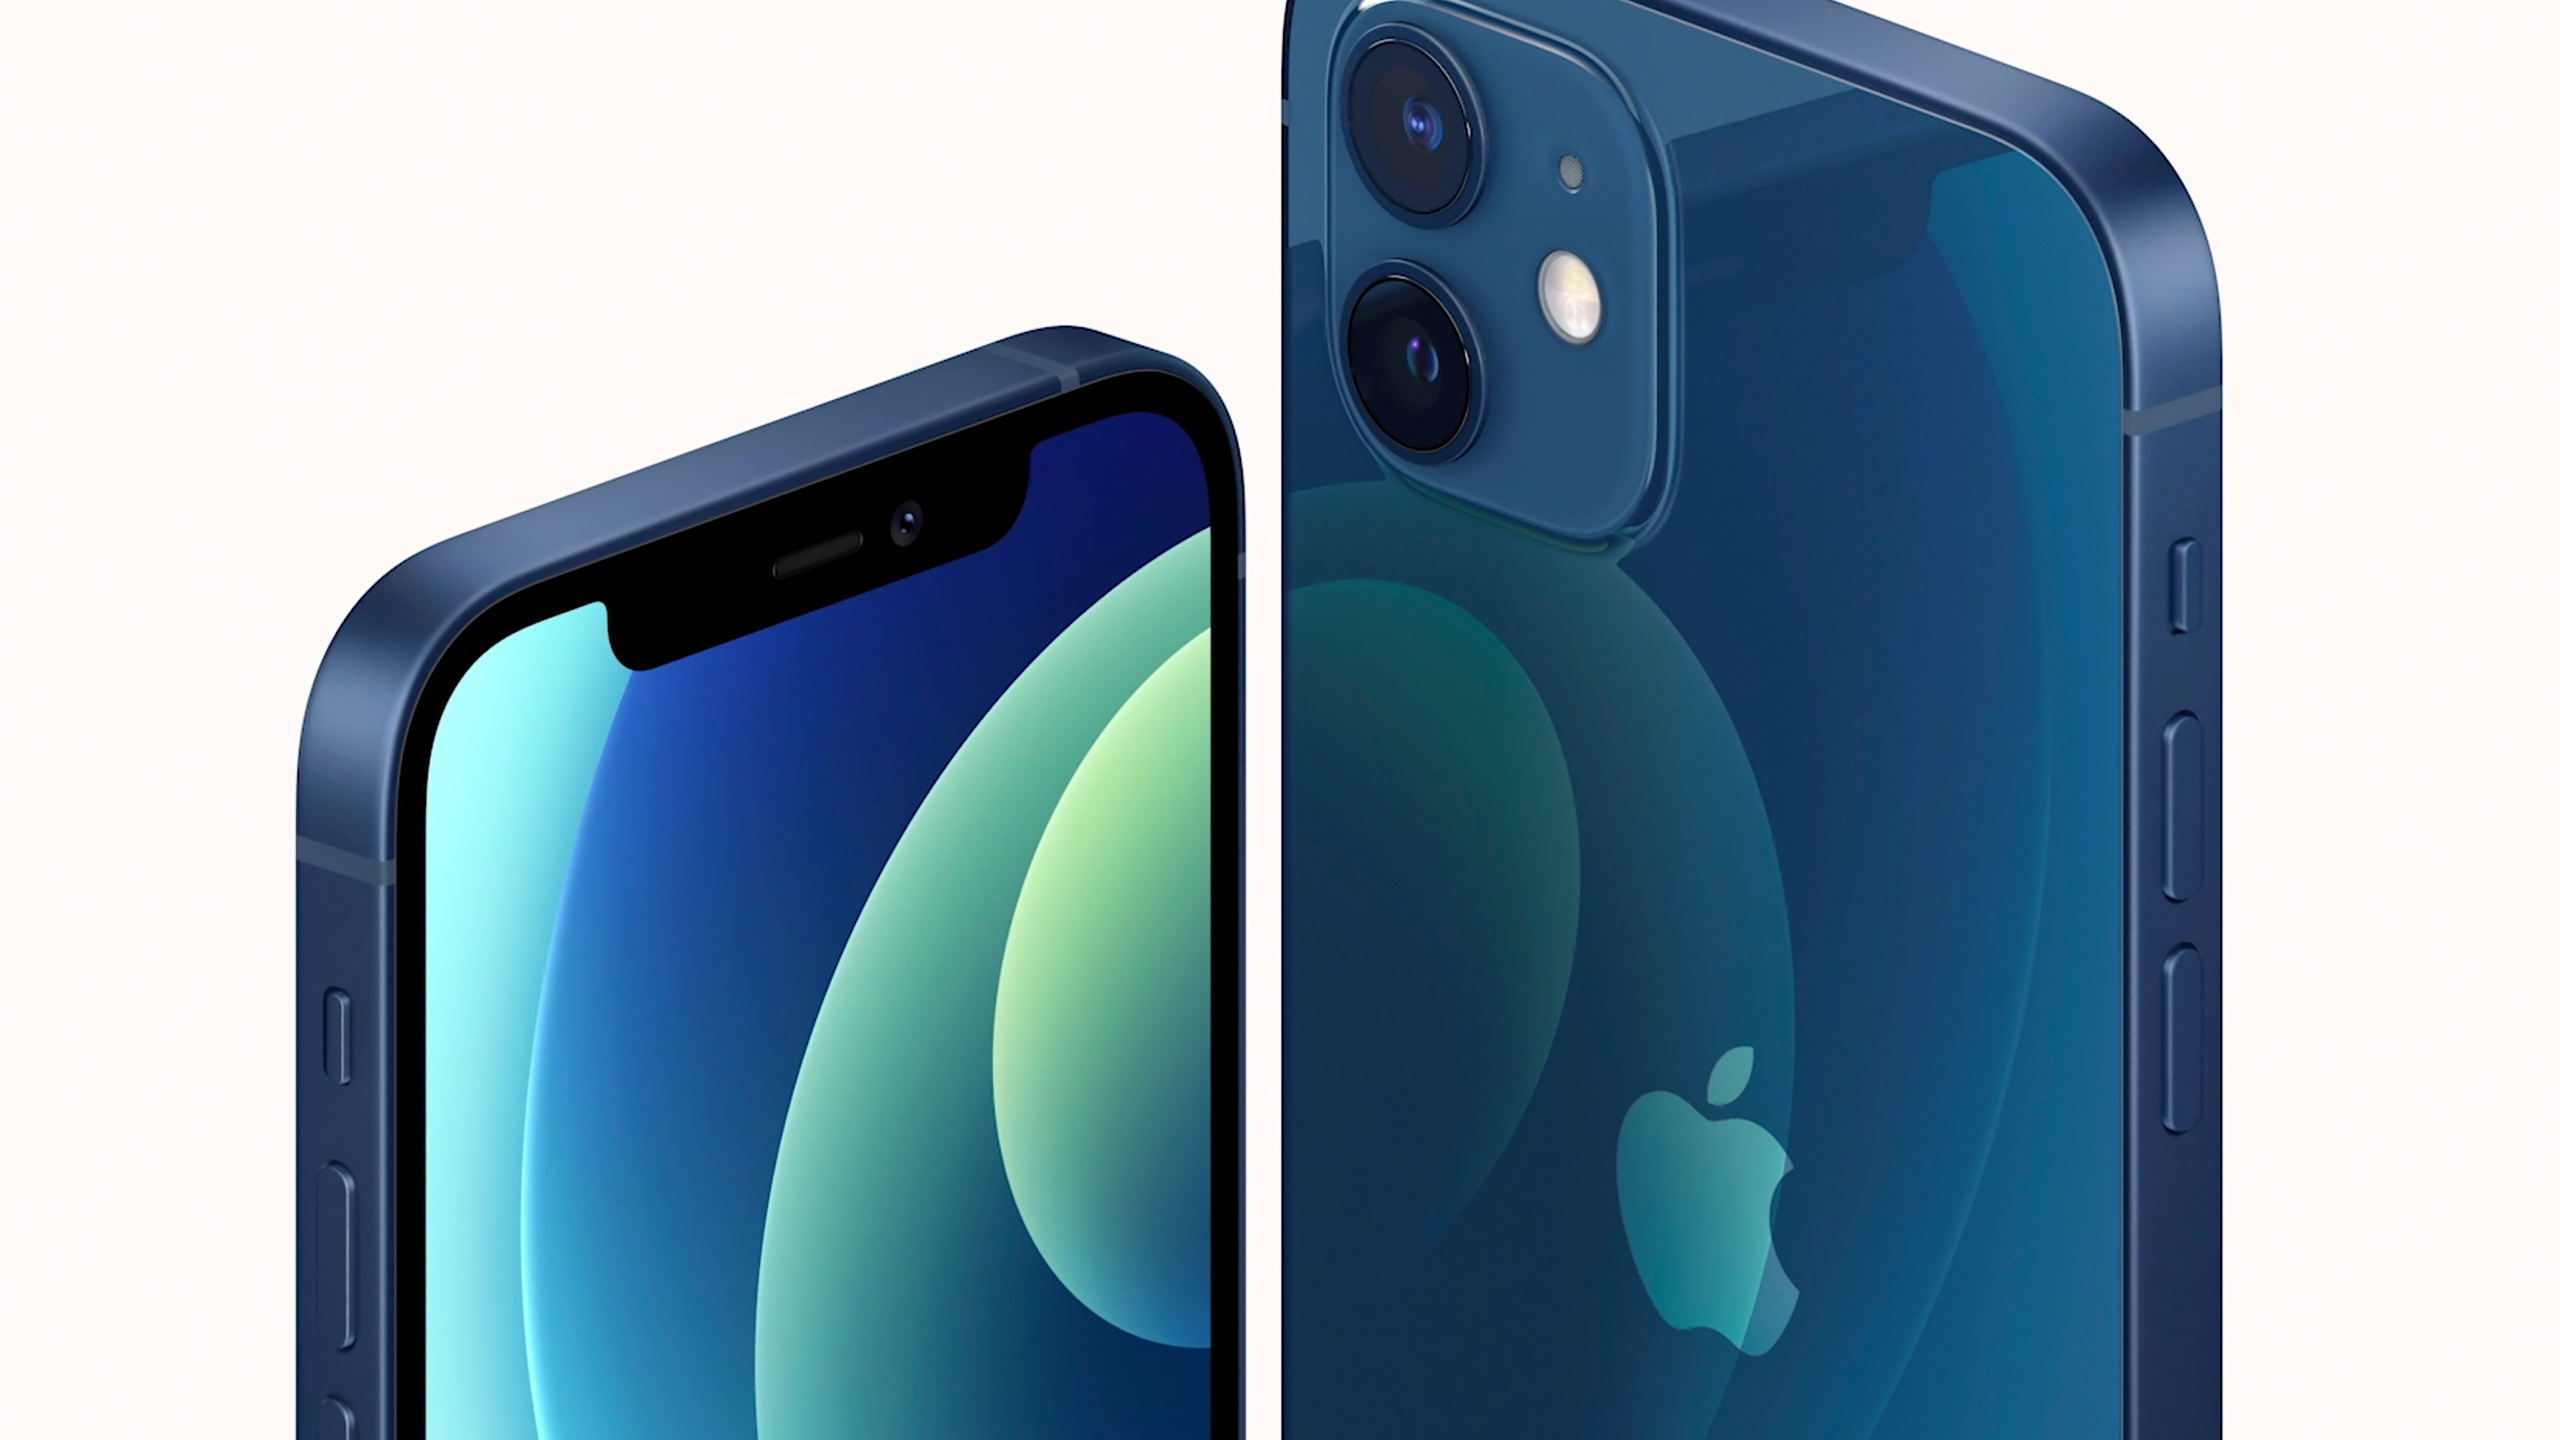 This image provided by Apple shows one of the new iPhone 12 equipped with technology for use with faster new 5G wireless networks that Apple unveiled Oct. 13, 2020.